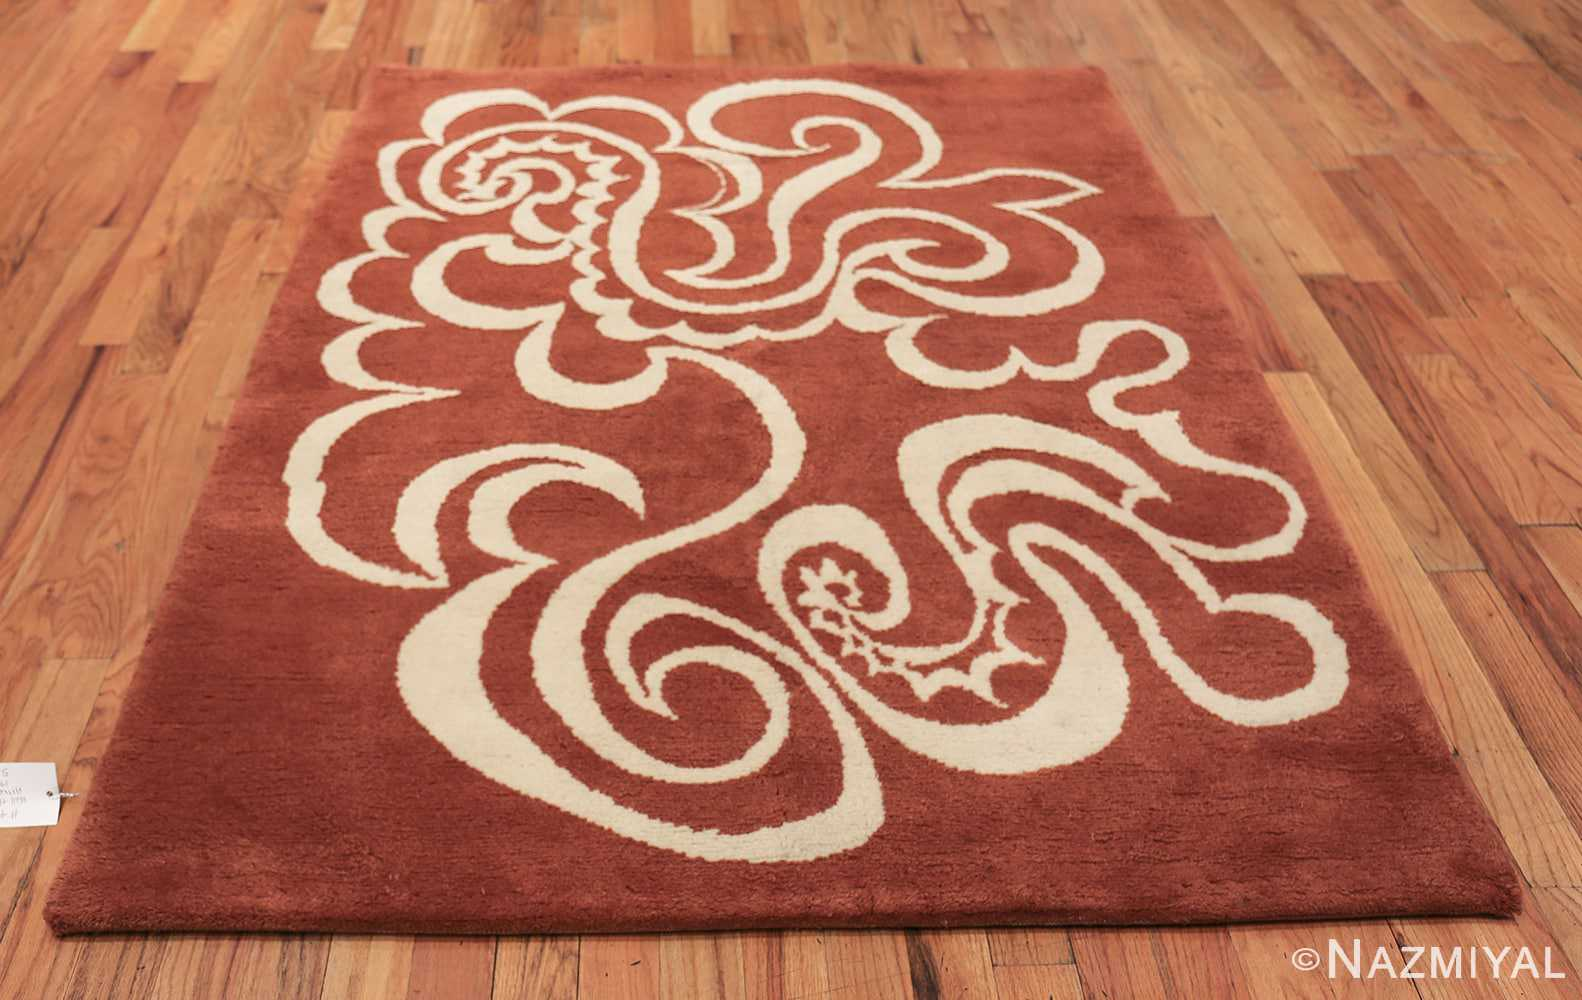 Vintage Arabesques Picasso Rug Commissioned by Marie Cuttoli 49802 top whole design Nazmiyal